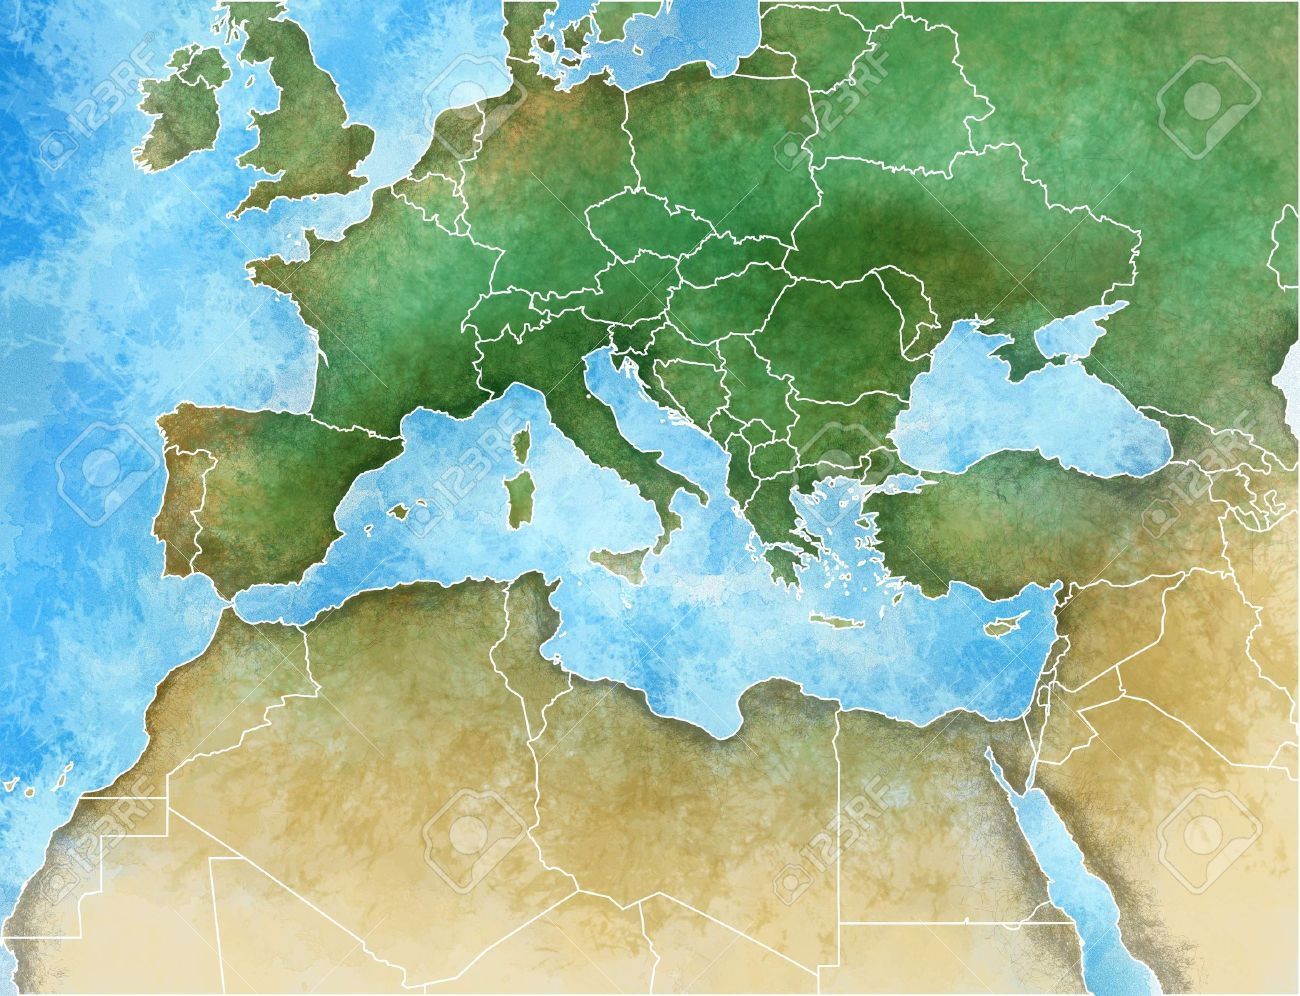 Hand-drawn Map Of The Mediterranean, Europe, Africa And Middle ...